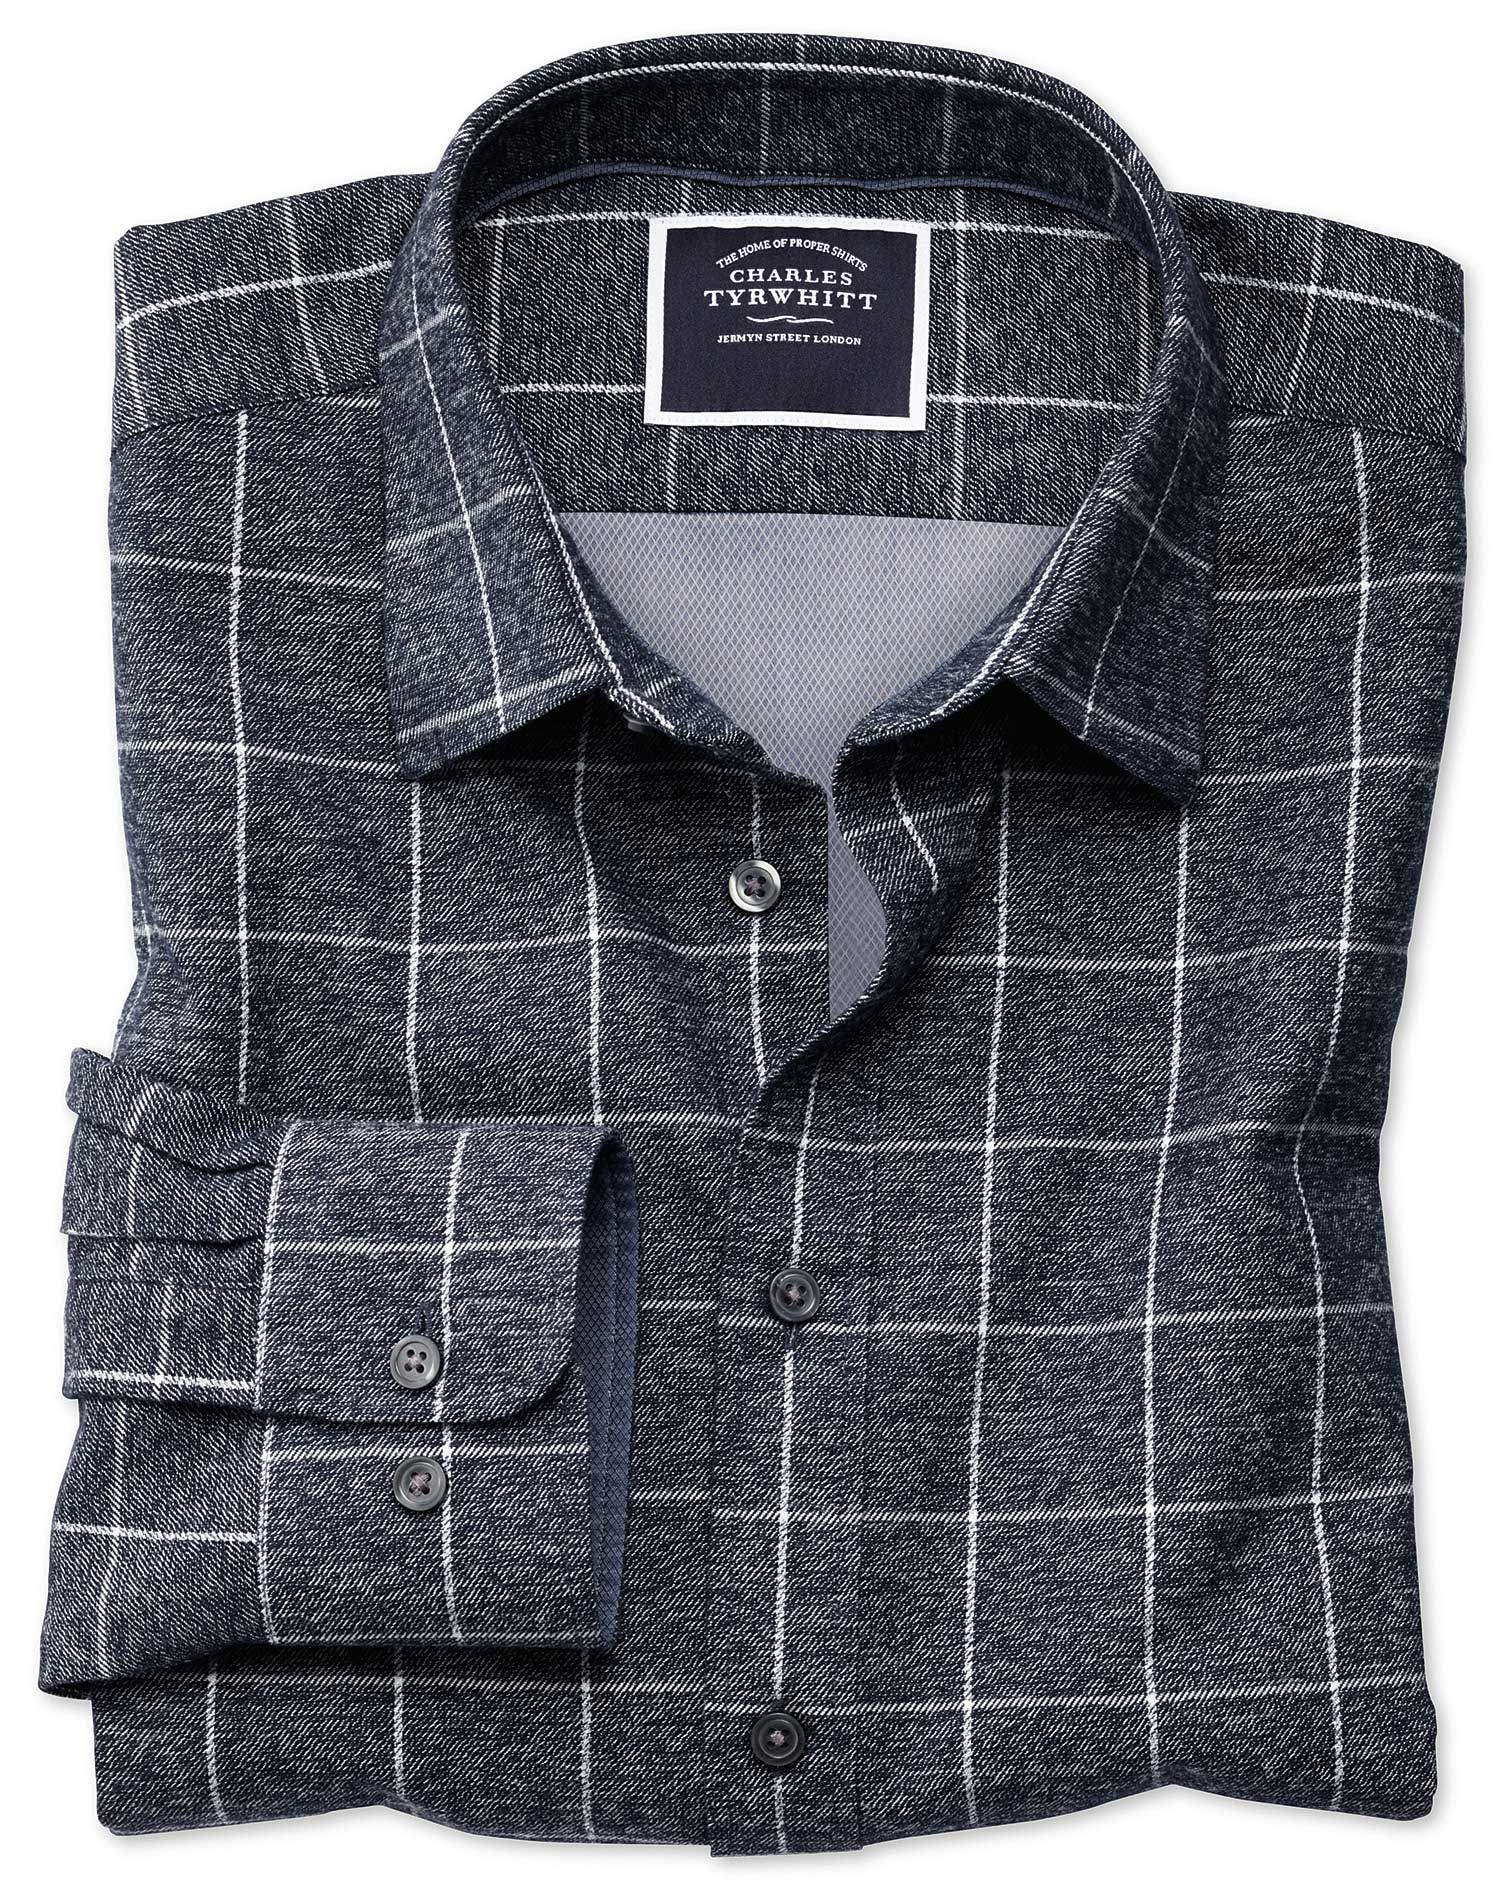 classic fit navy and white check soft textured cotton casual shirt single cuff size small by charles tyrwhitt